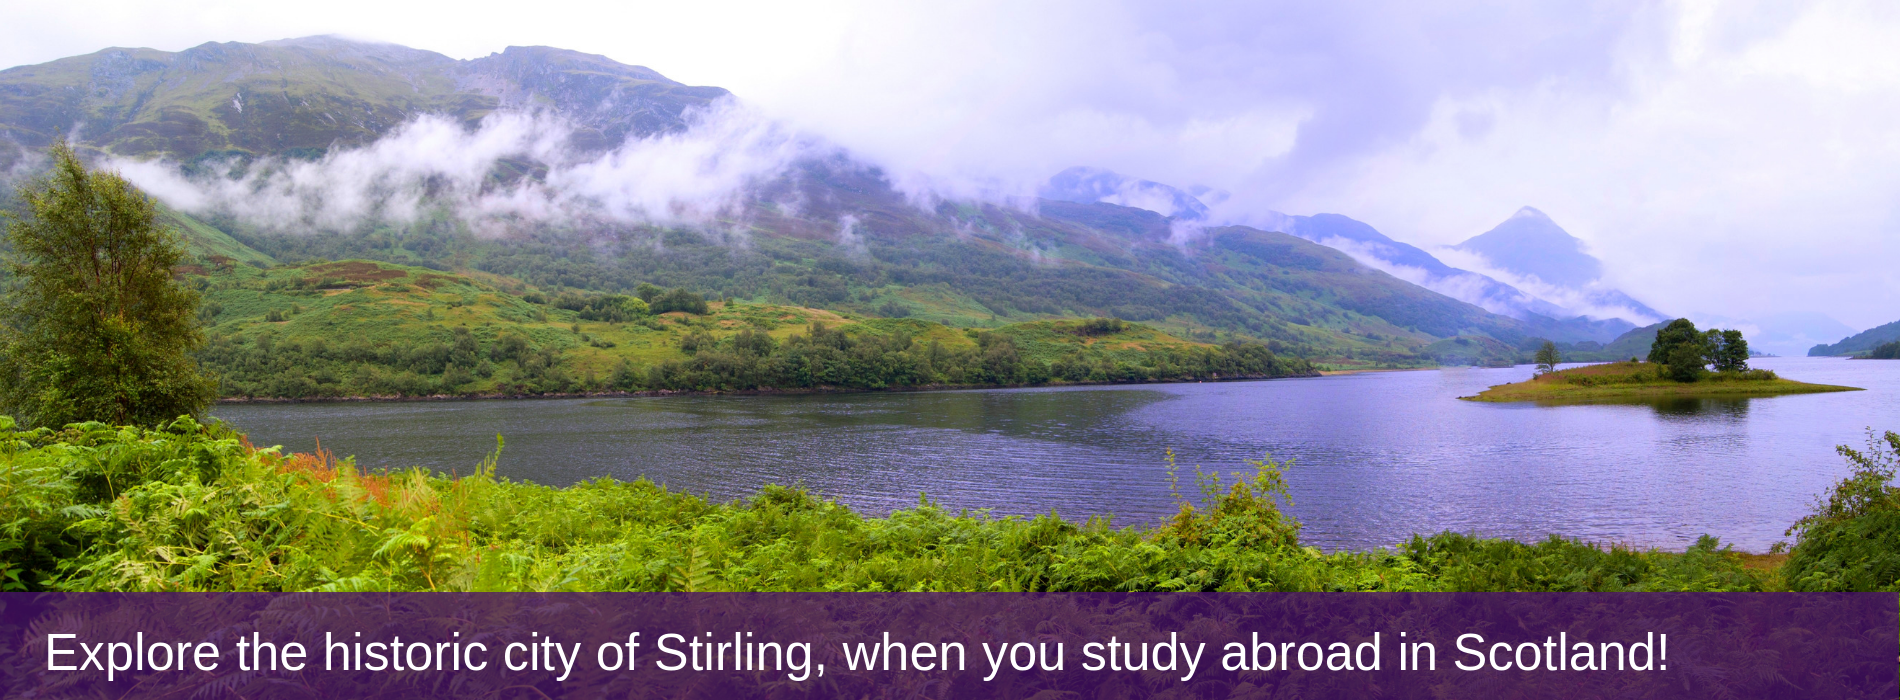 Explore the historic city of Stirling, when you study abroad in Scotland!